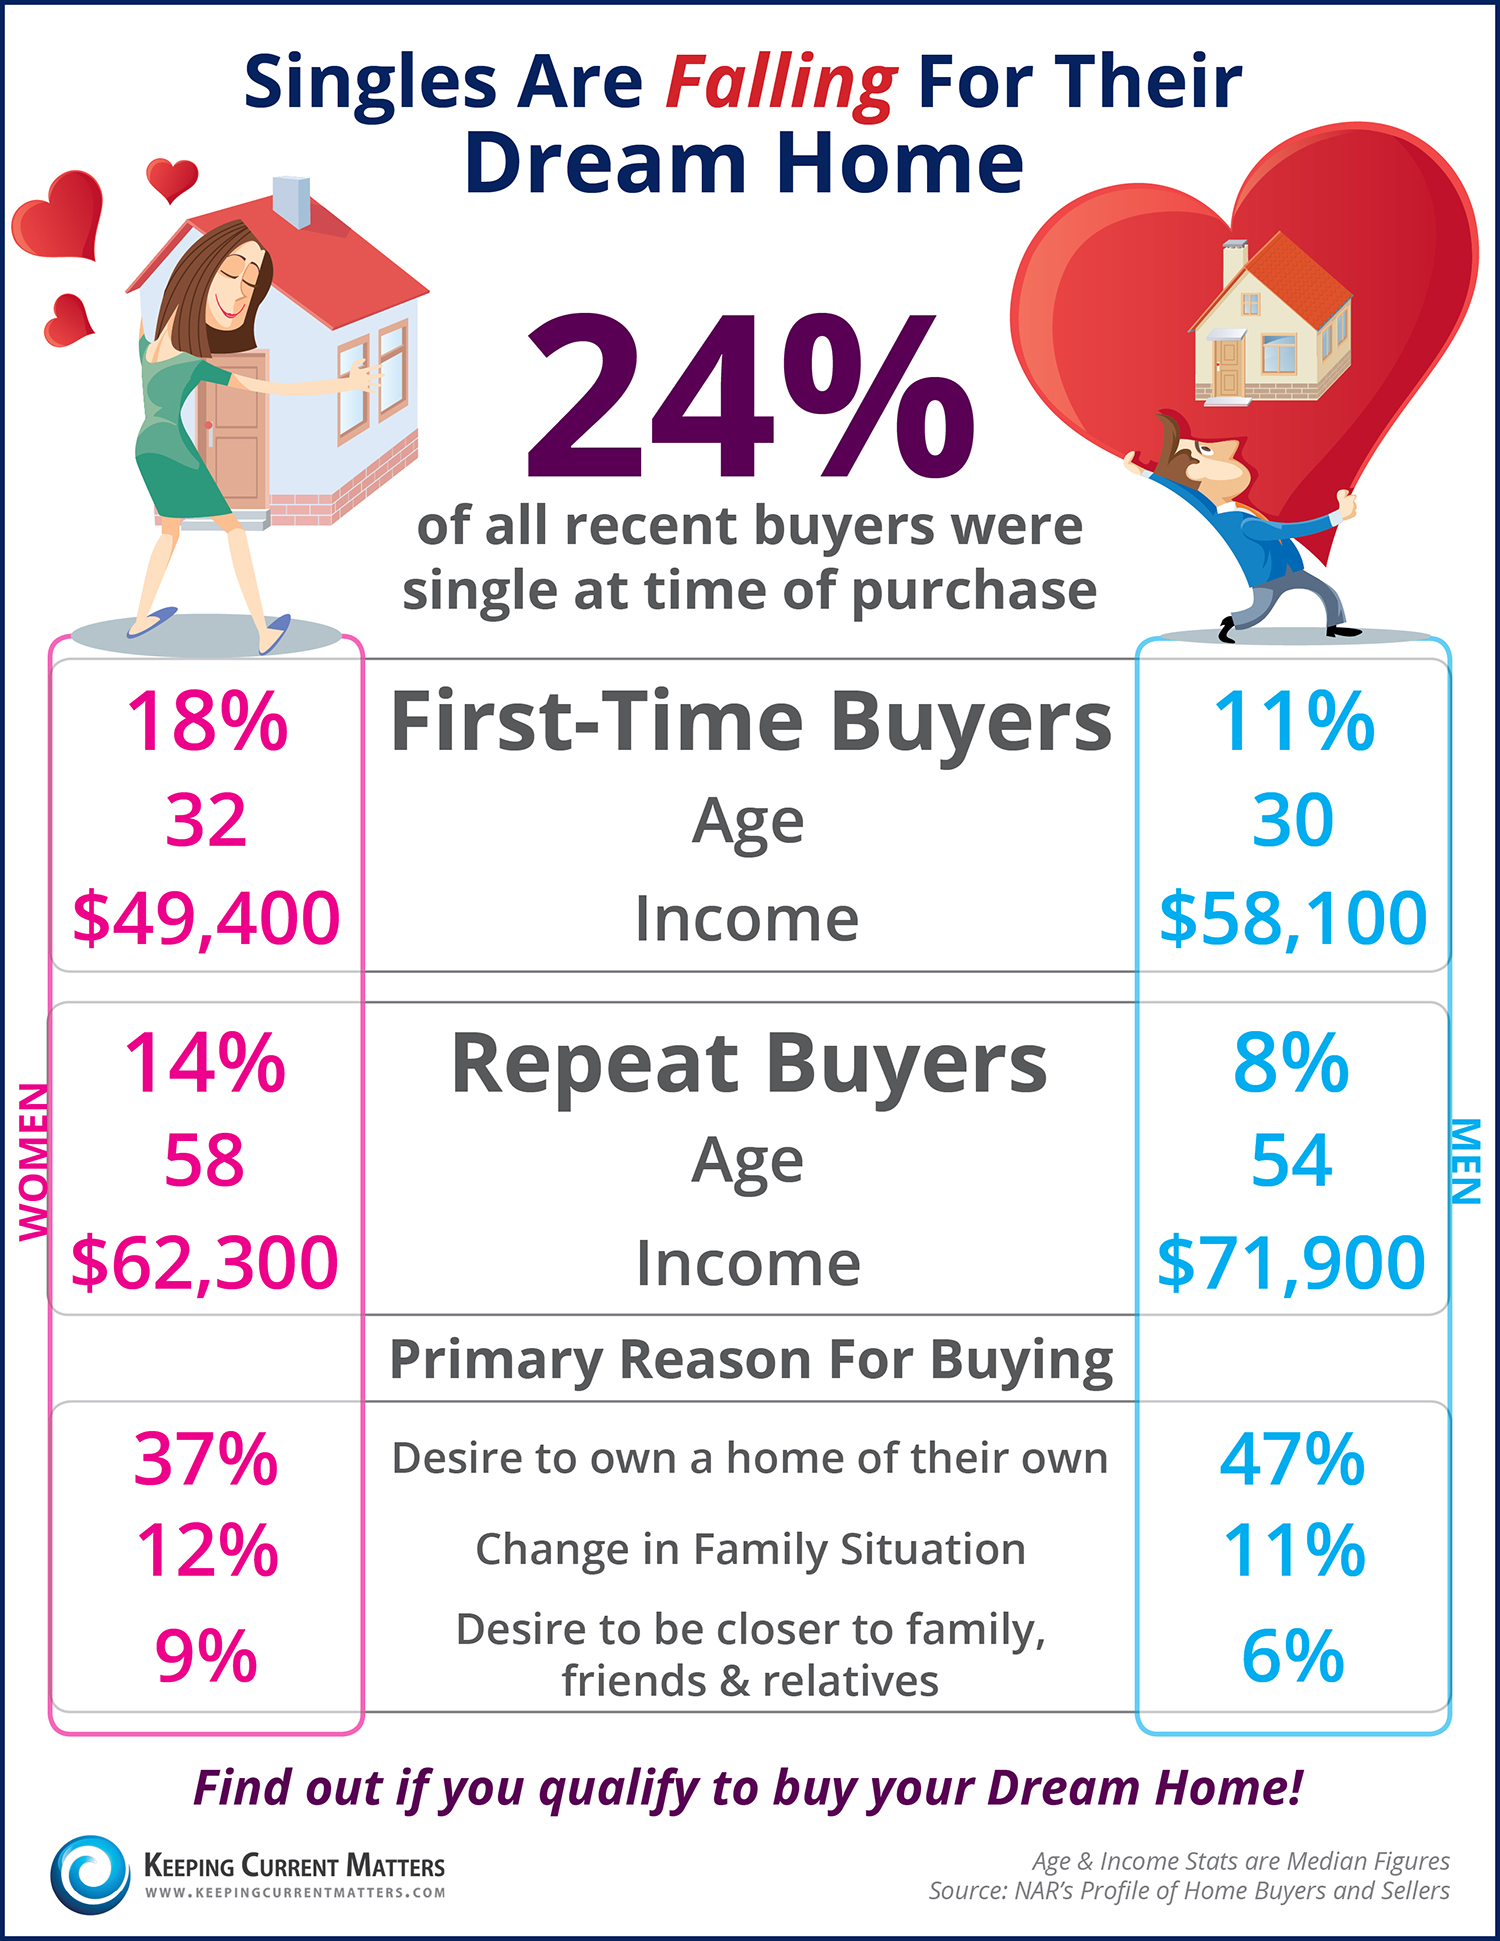 Singles Are Falling For Their Dream Home [INFOGRAPHIC] | Keeping Current Matters